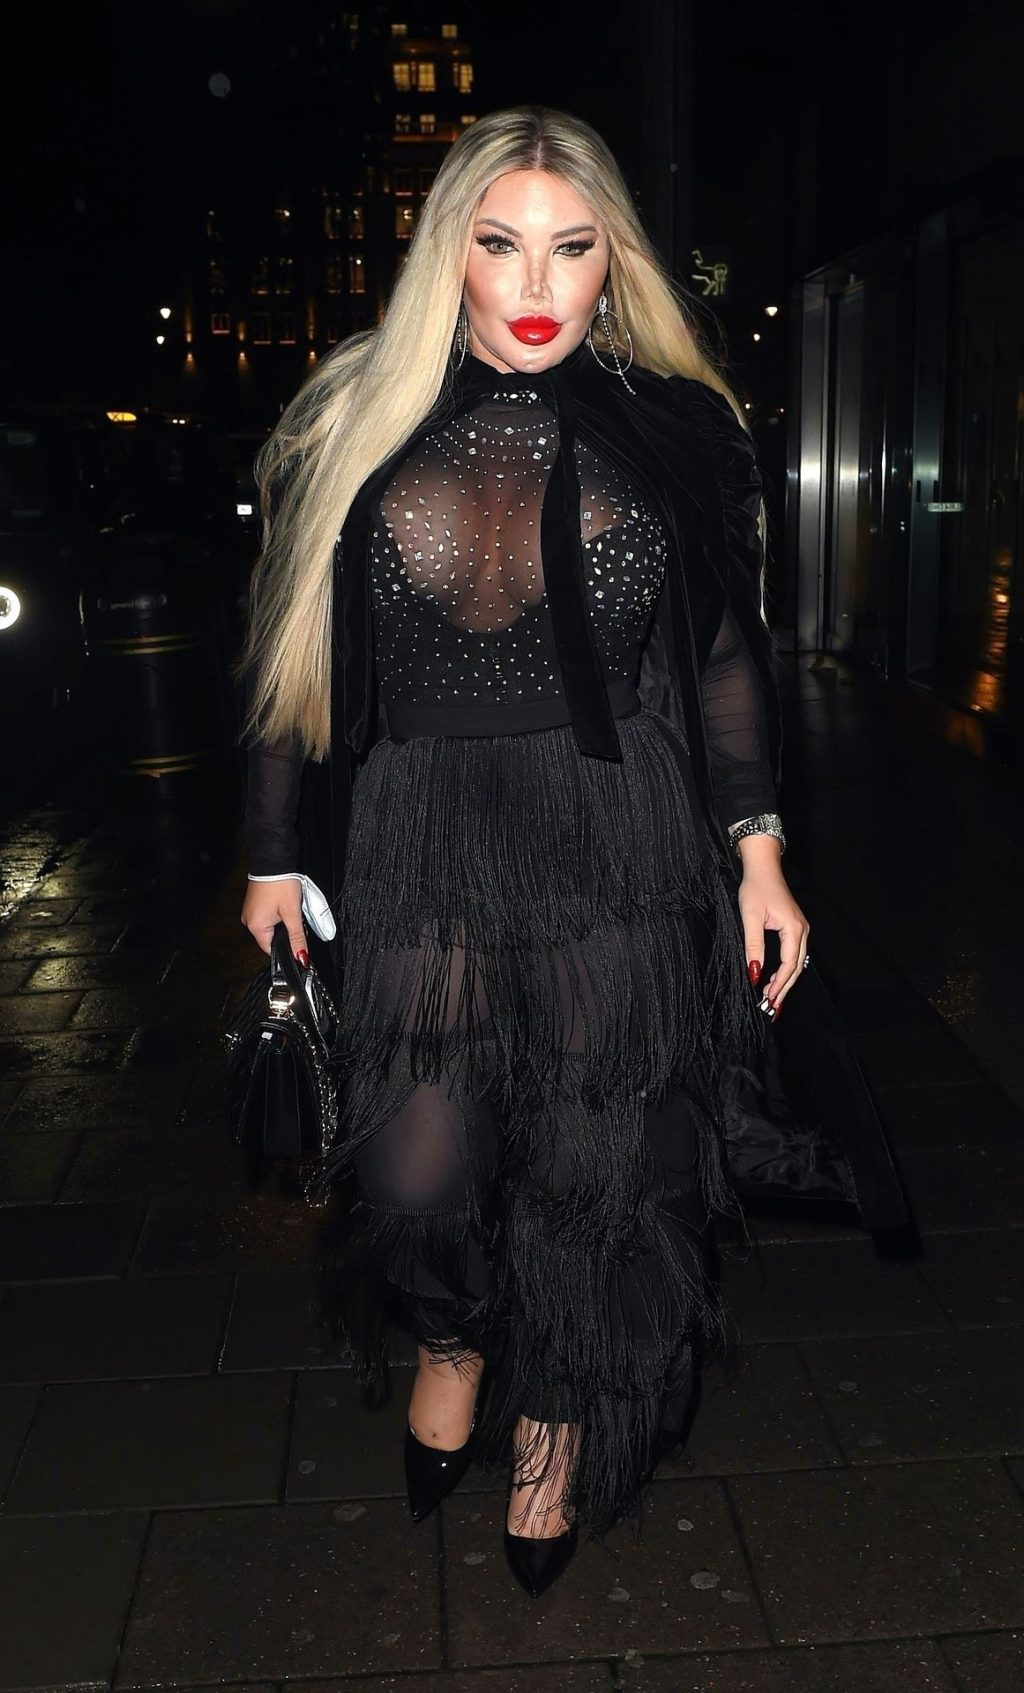 Jessica Alves Looks Striking as She Arrives at Amazonico Mayair in London (22 Photos)